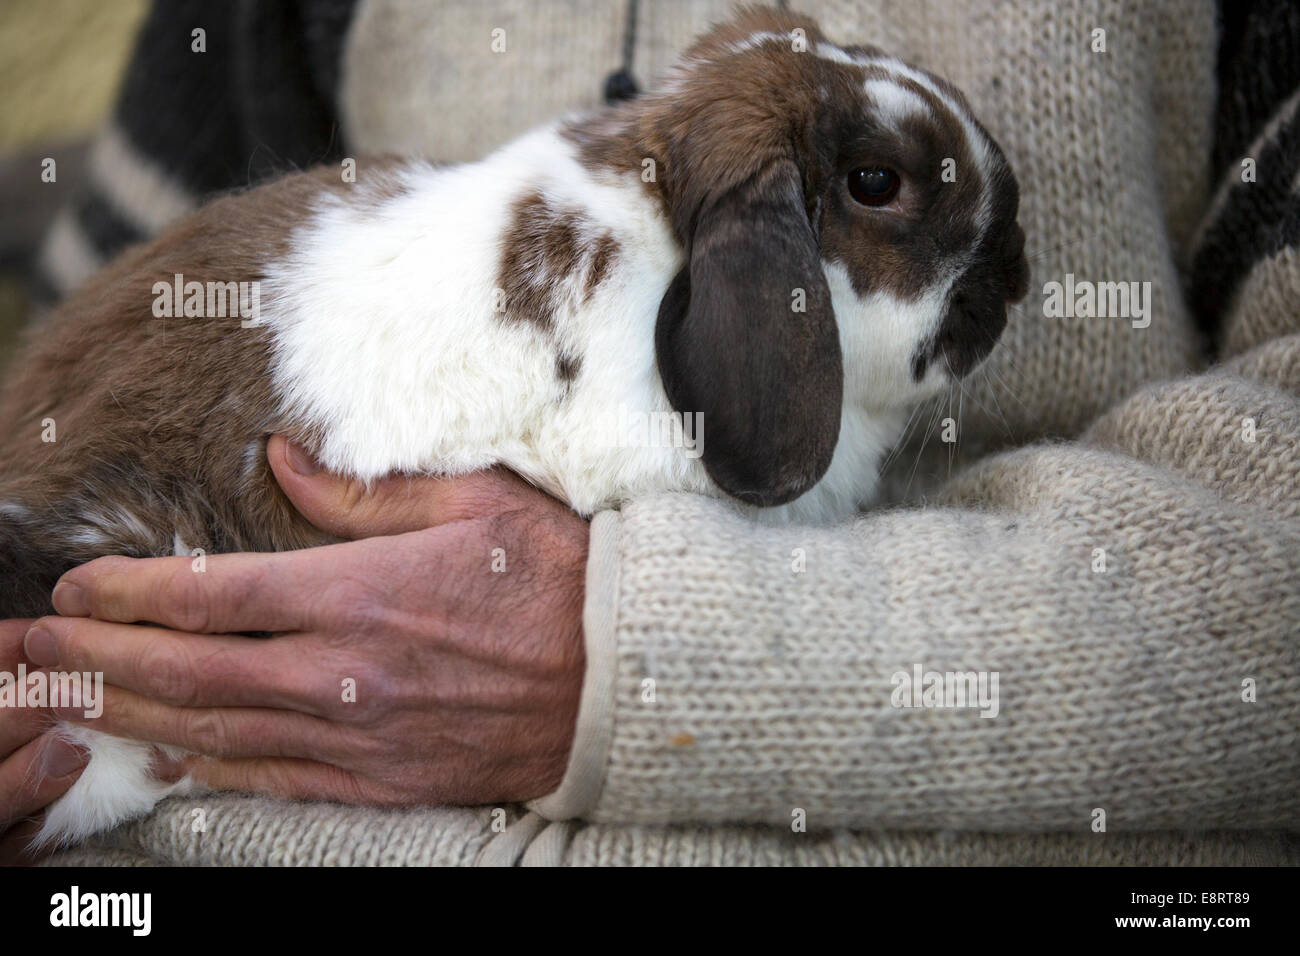 1a2ae1424ce Holland Lop Rabbit Stock Photos   Holland Lop Rabbit Stock Images ...